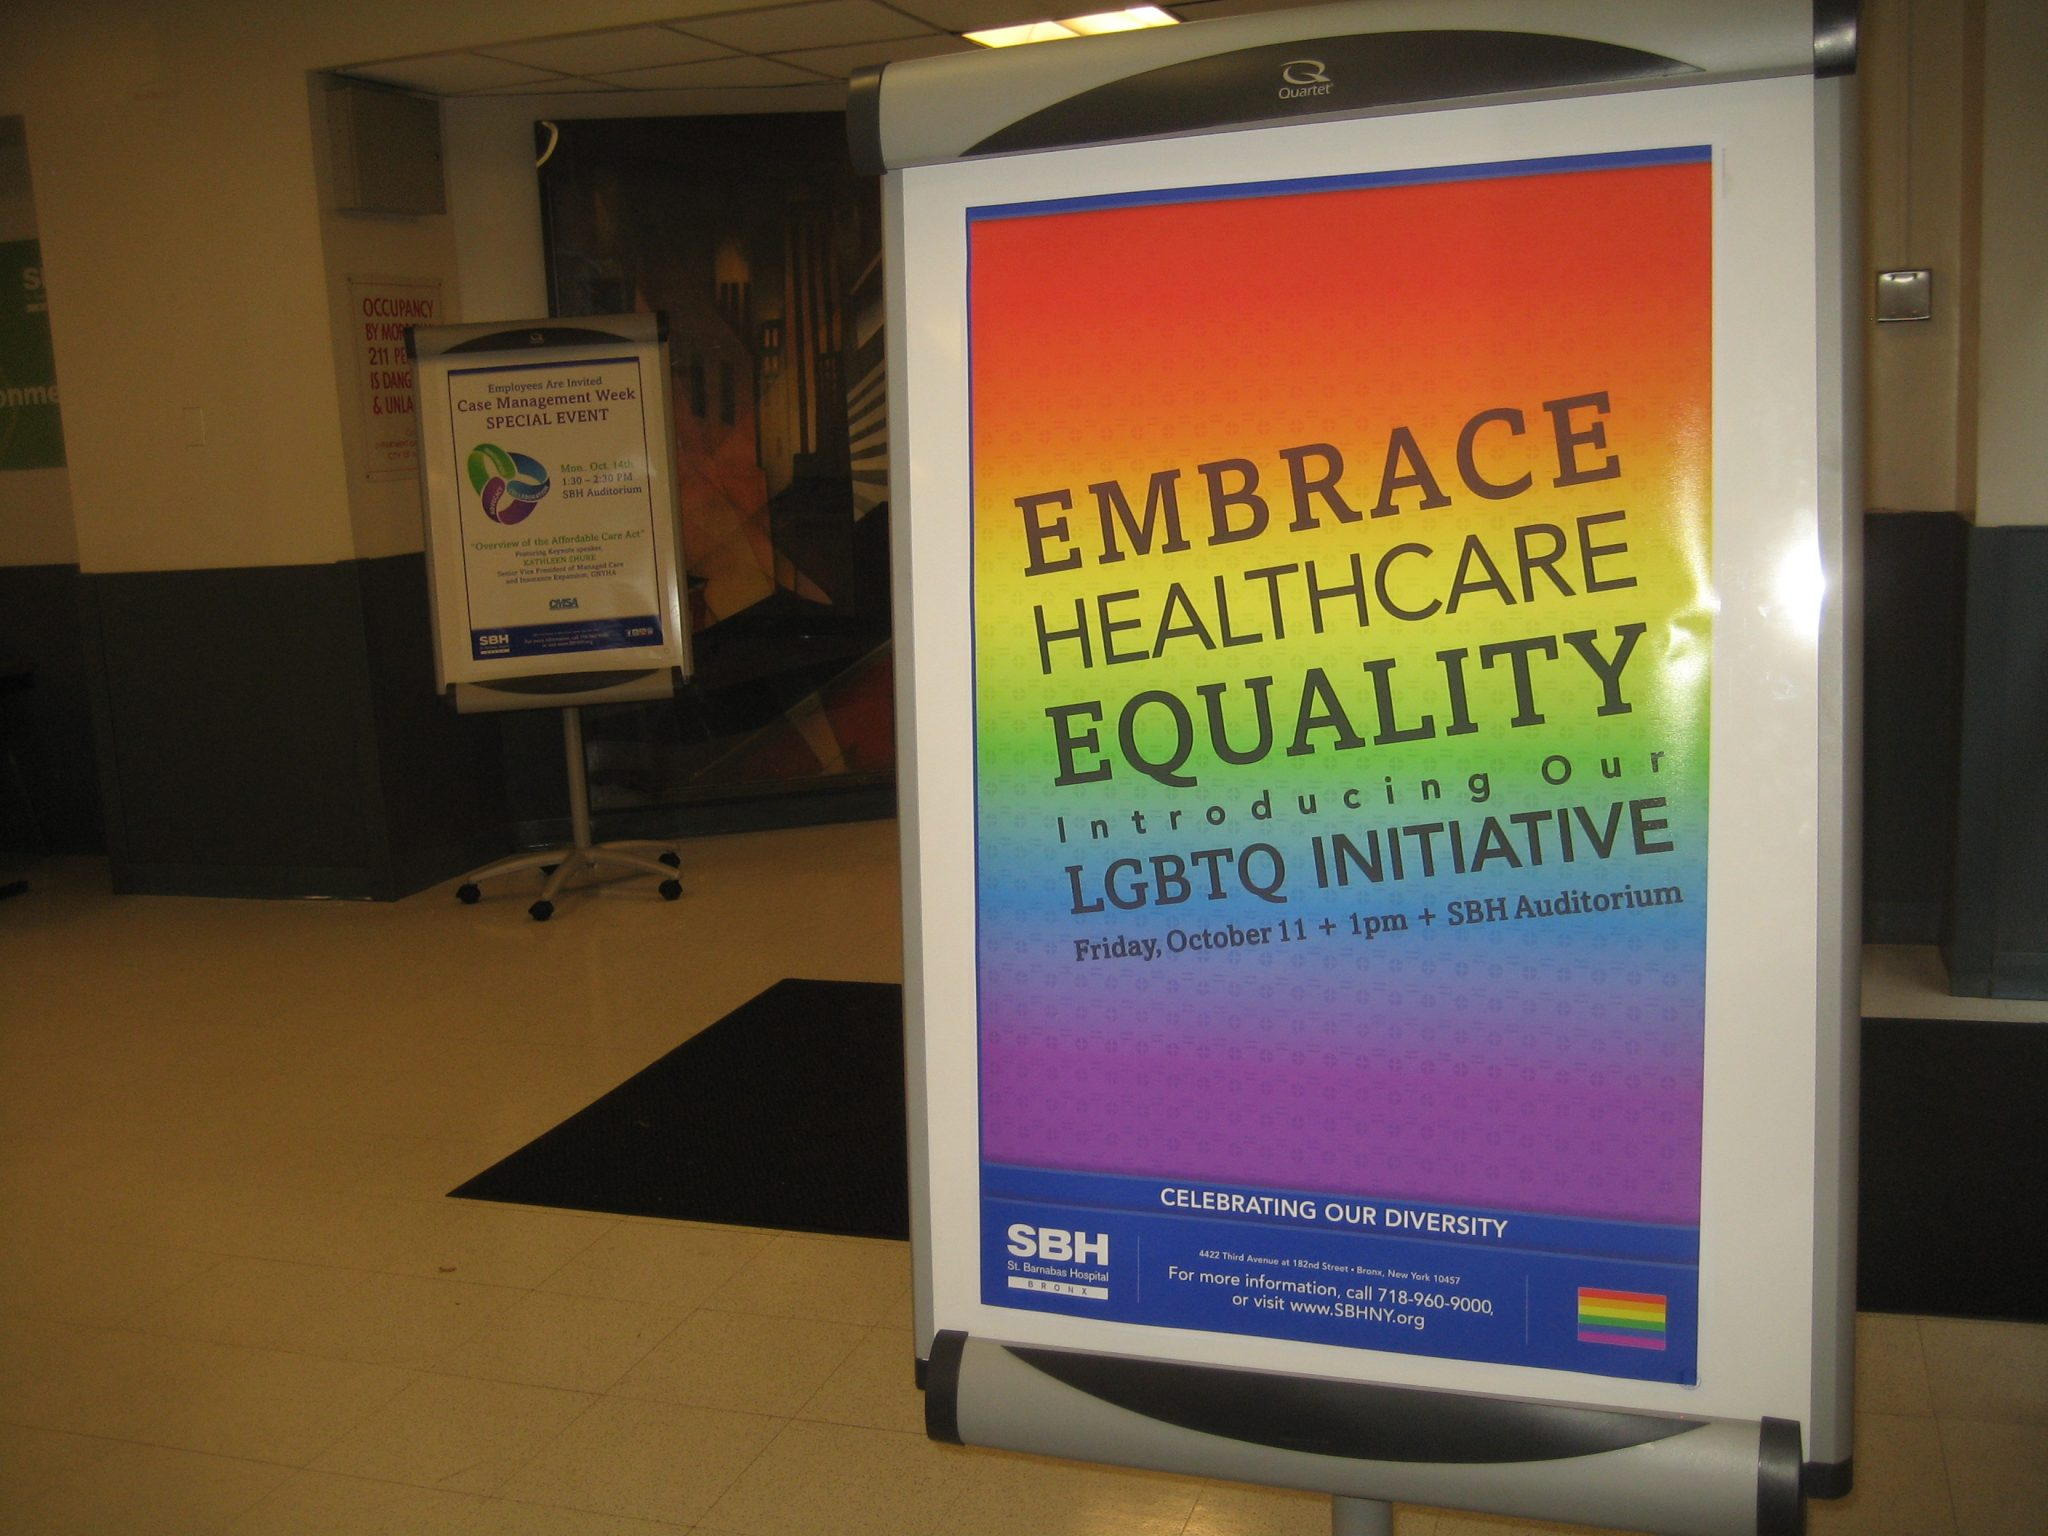 Transgender Health Care: What Hospital-Based Providers Need to Know